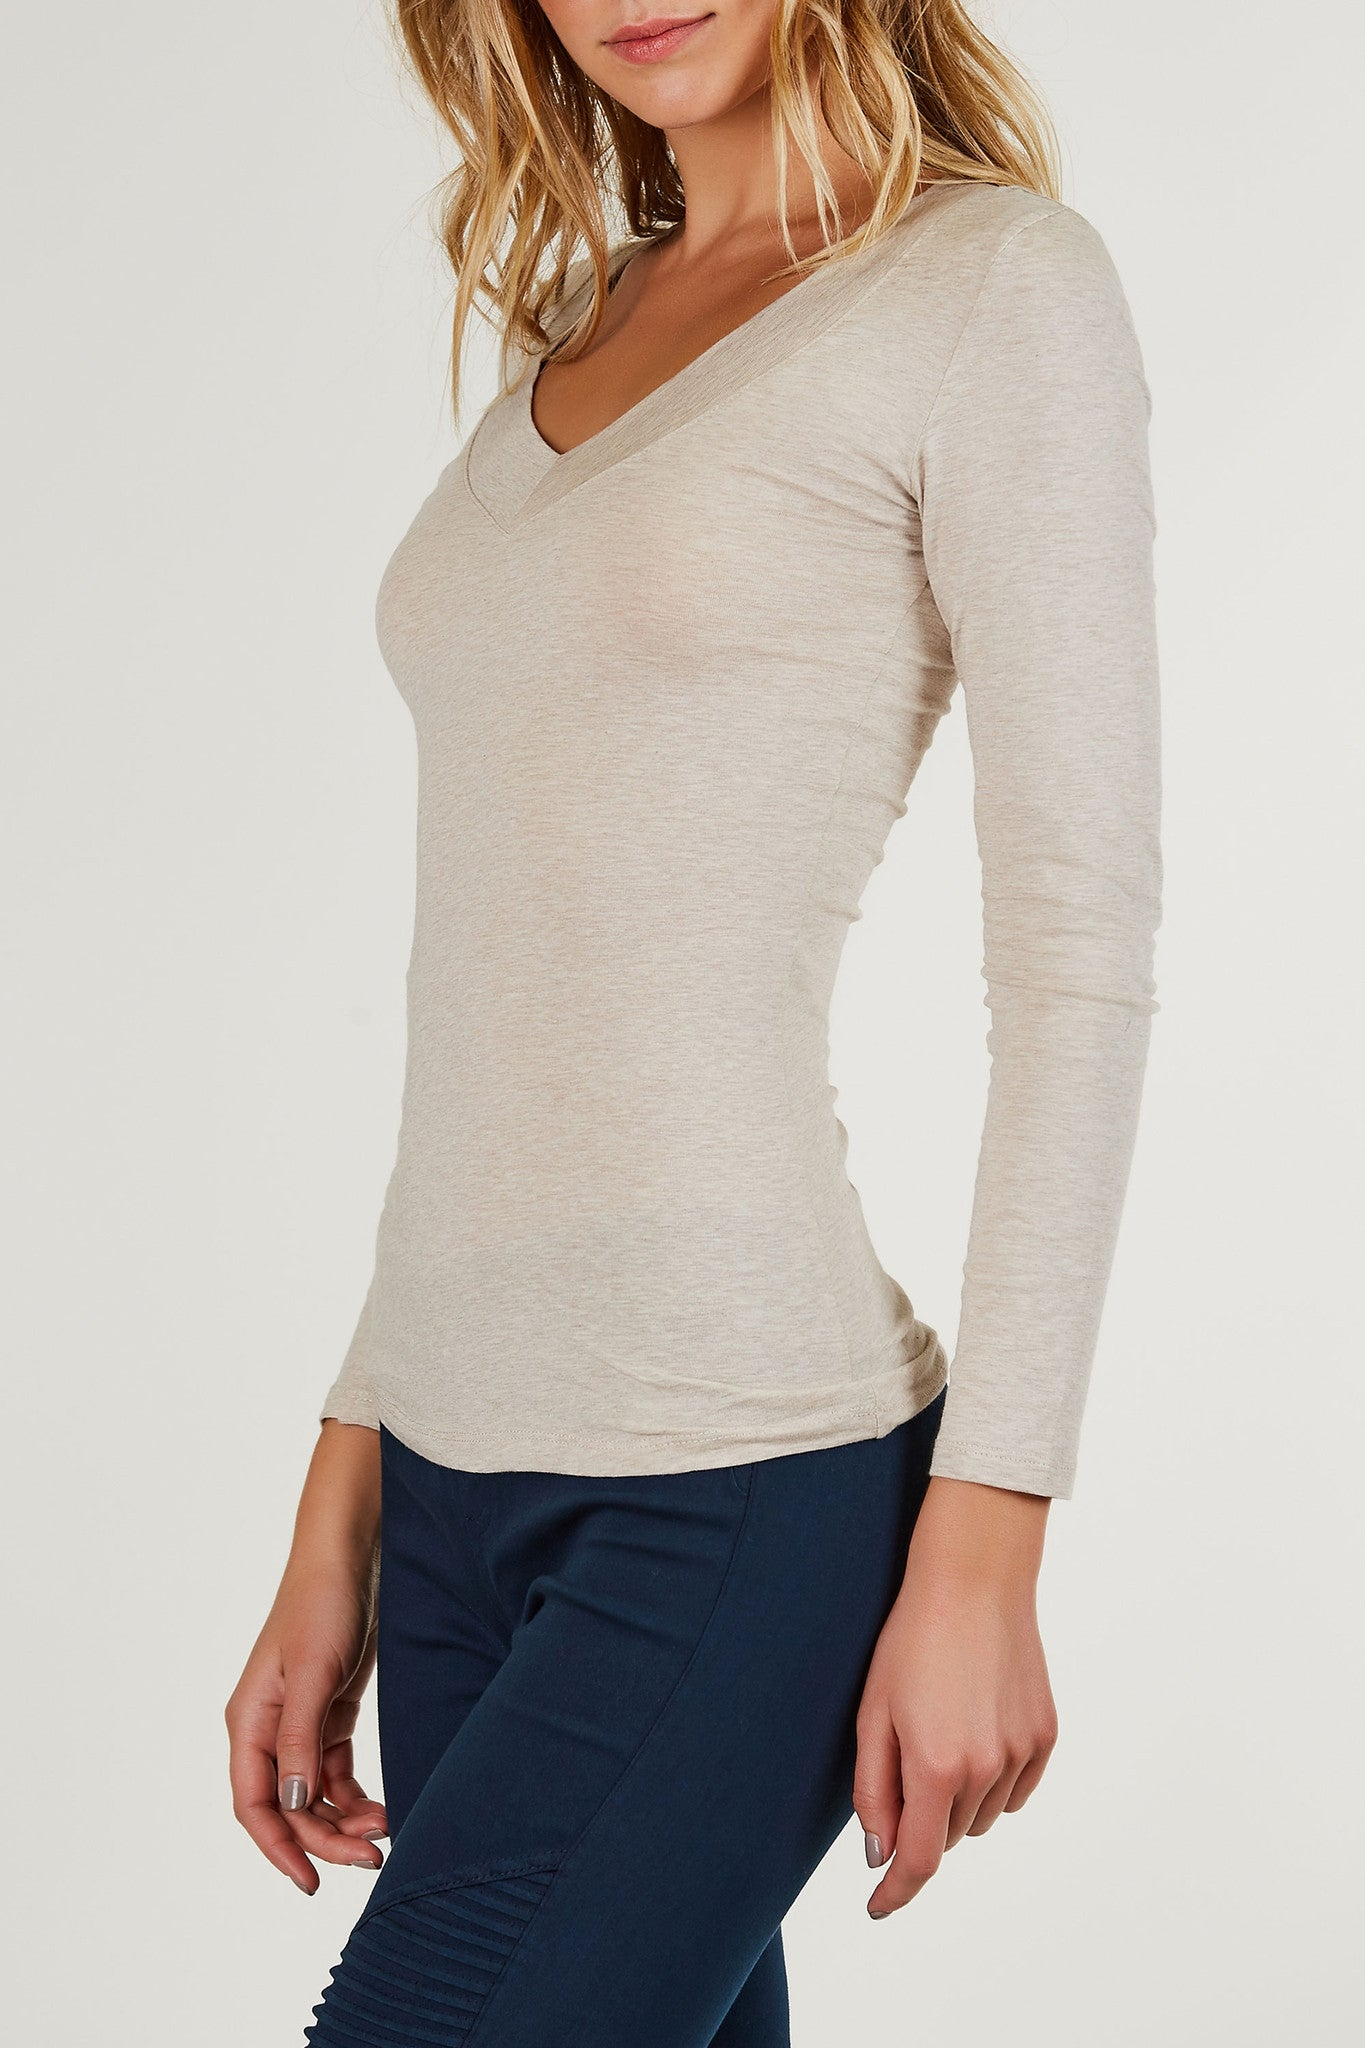 Long sleeve V-neck top with longline hem. Lightweight material with comfortable snug fit.